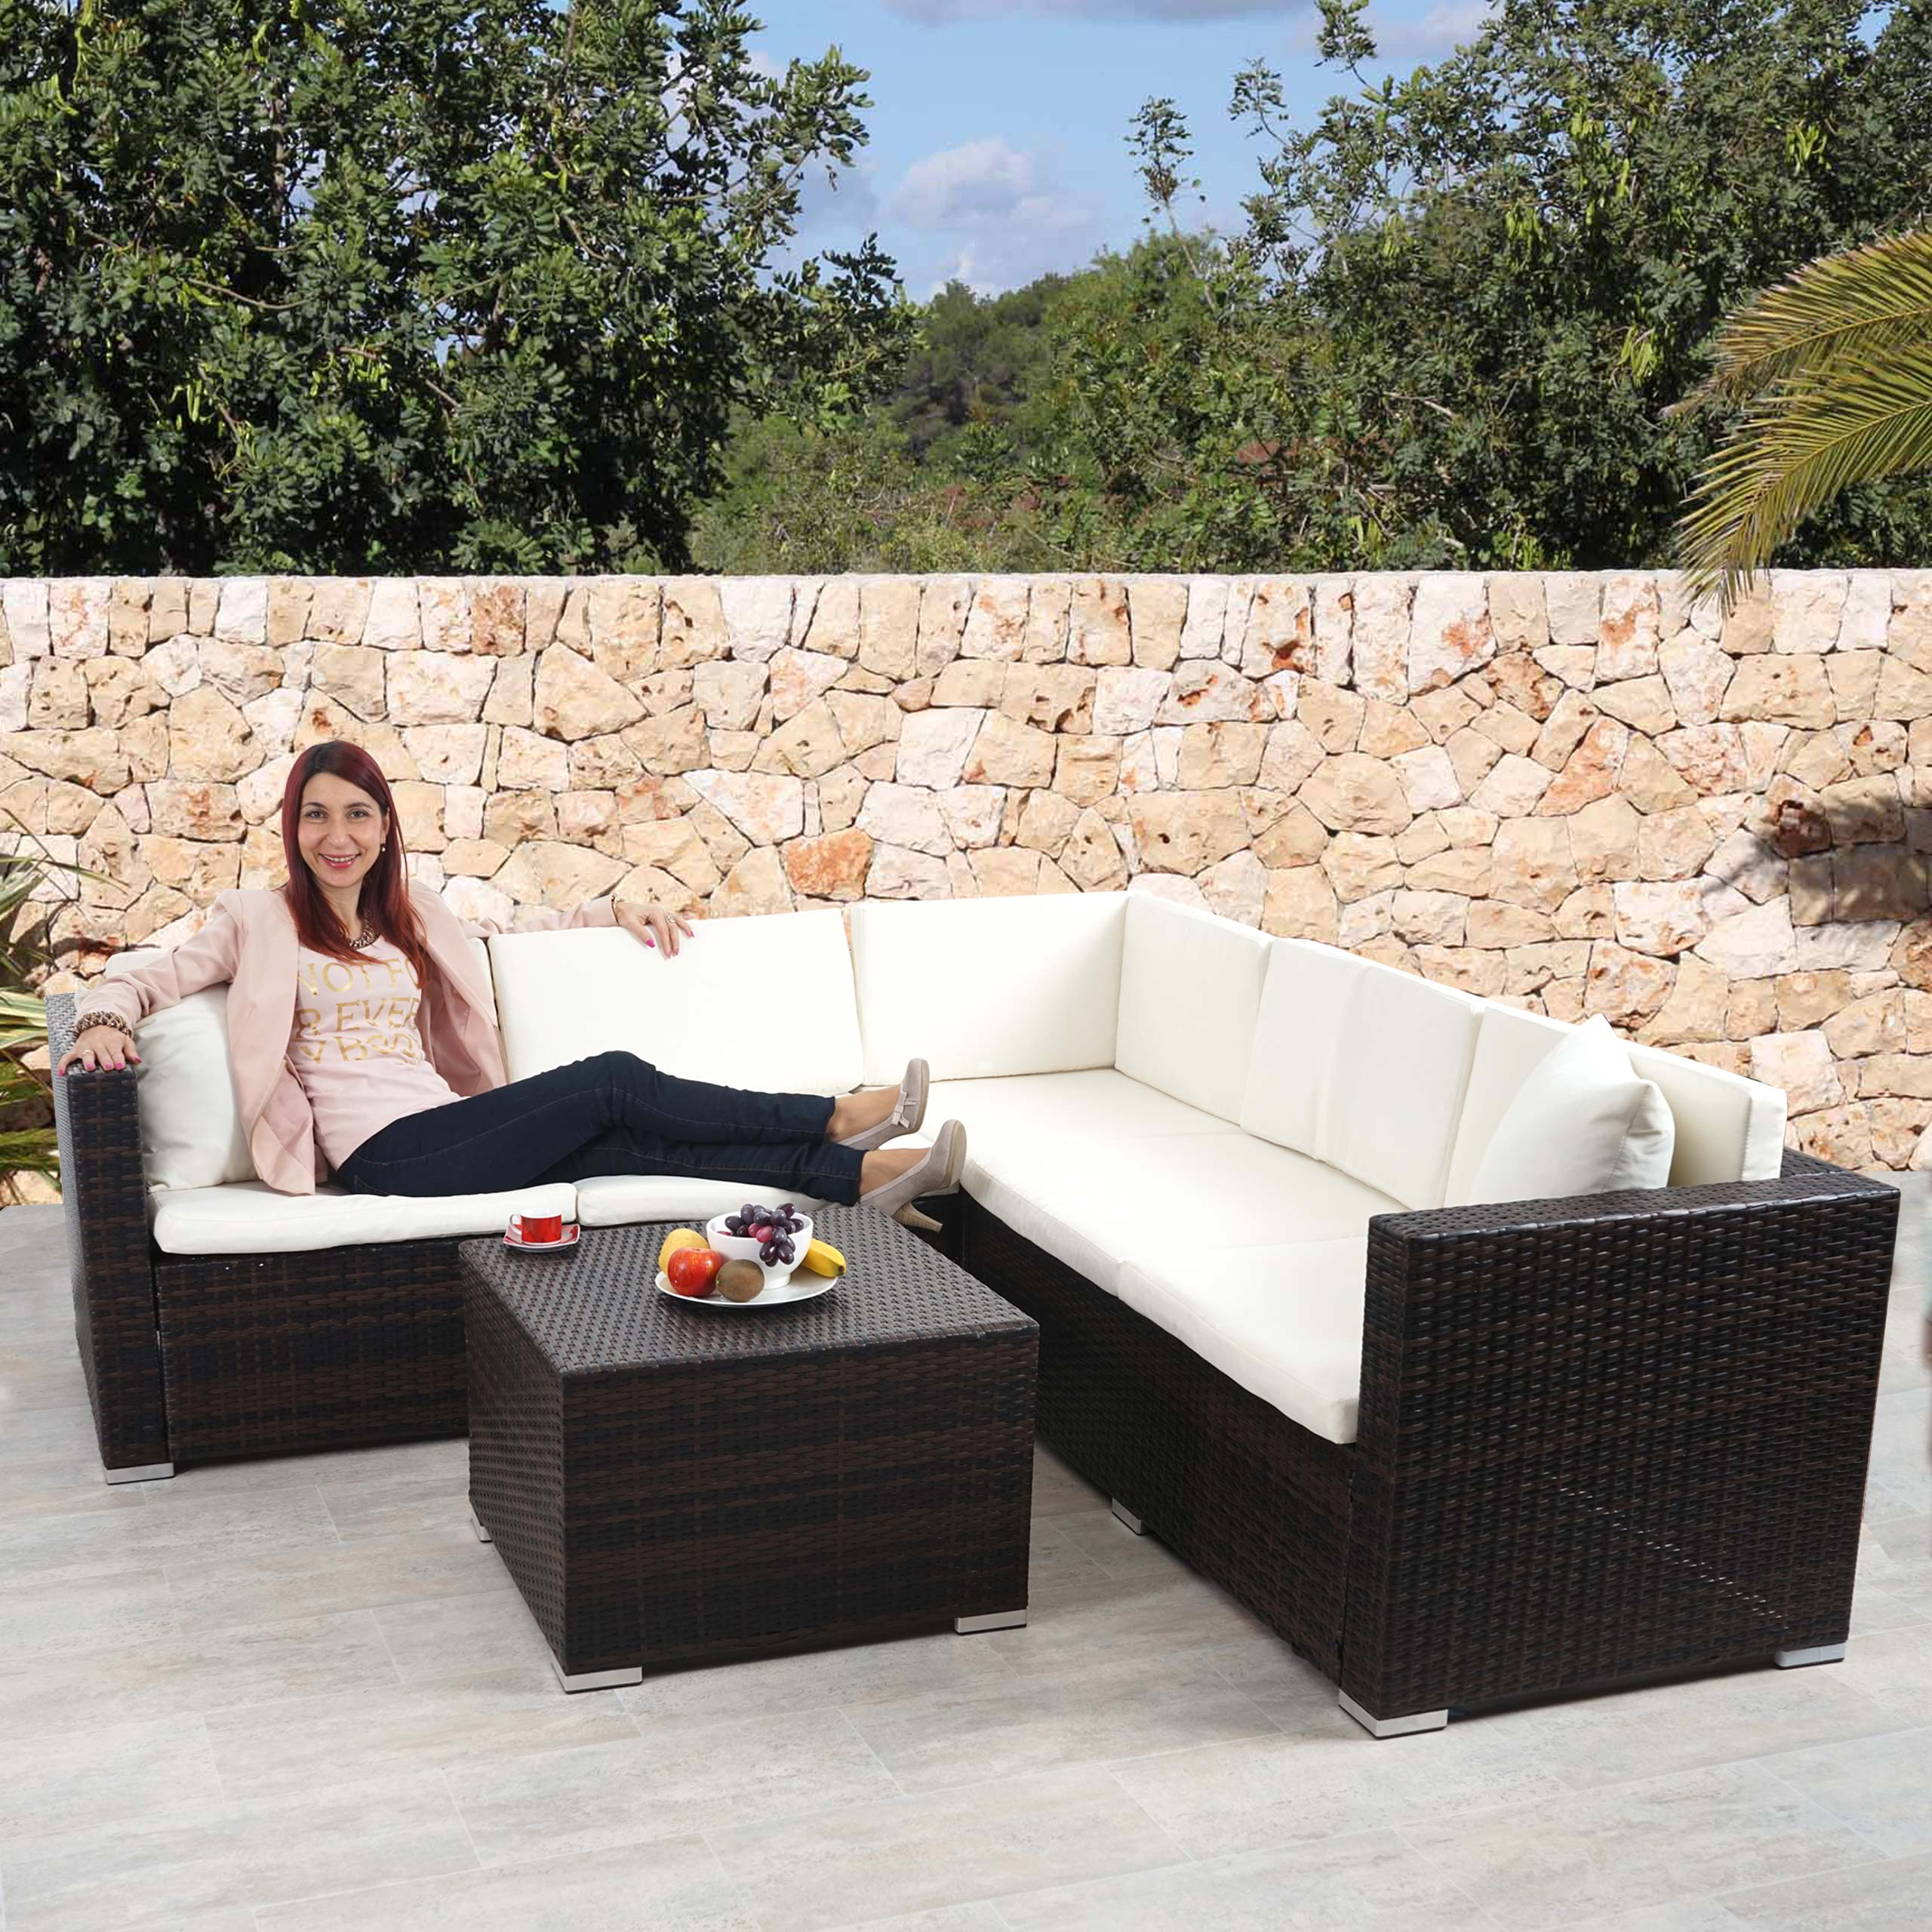 Poly-rattan Sofa-garnitur Rom Basic Poly Rattan Sofa Garnitur Rom Basic Sitzgruppe Lounge Set